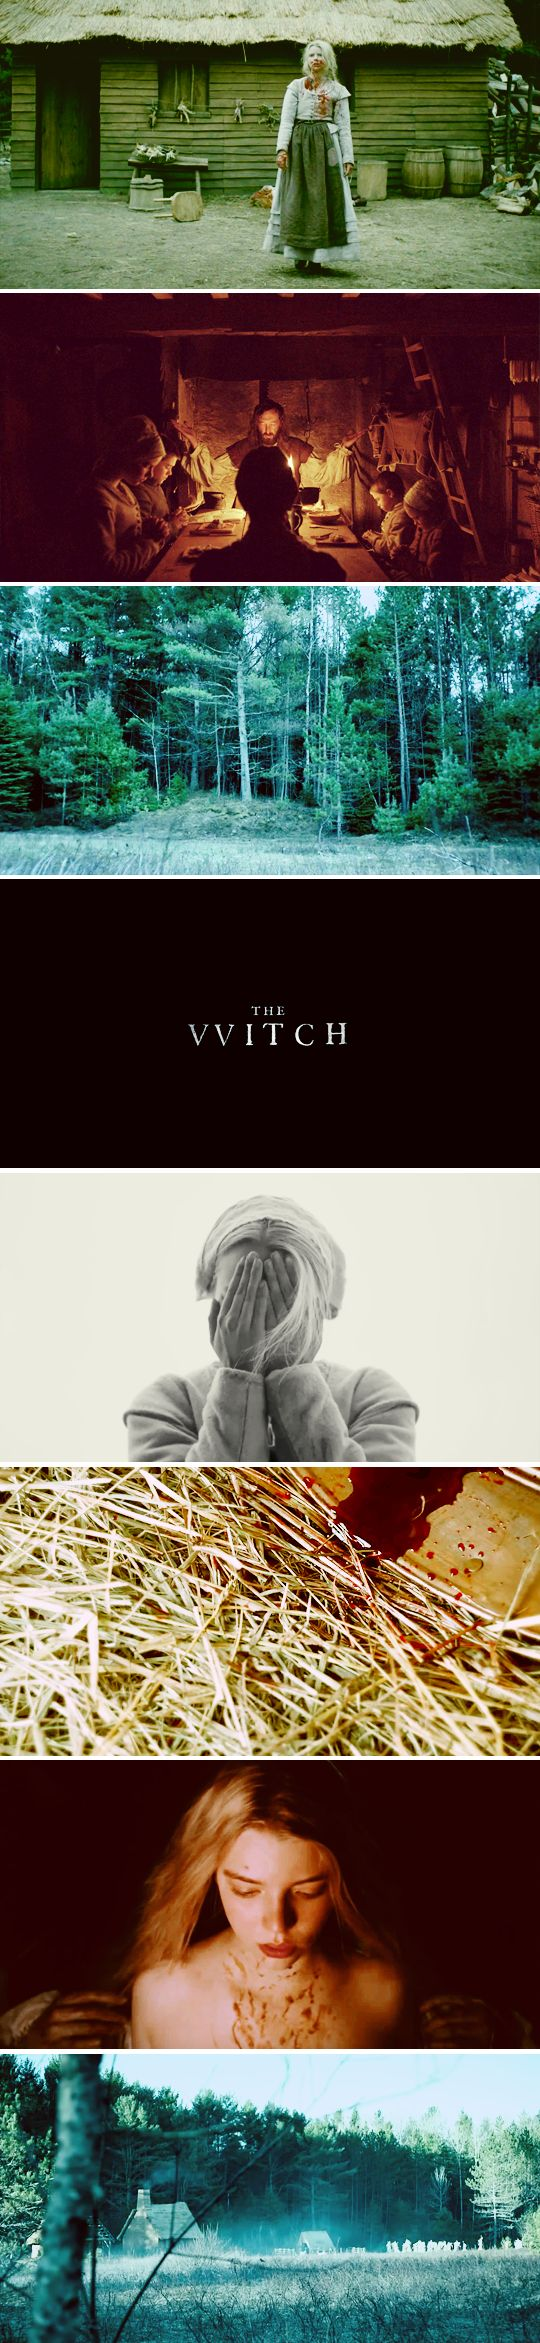 """Wouldst thou like to live deliciously?"" - The Witch (2015)"